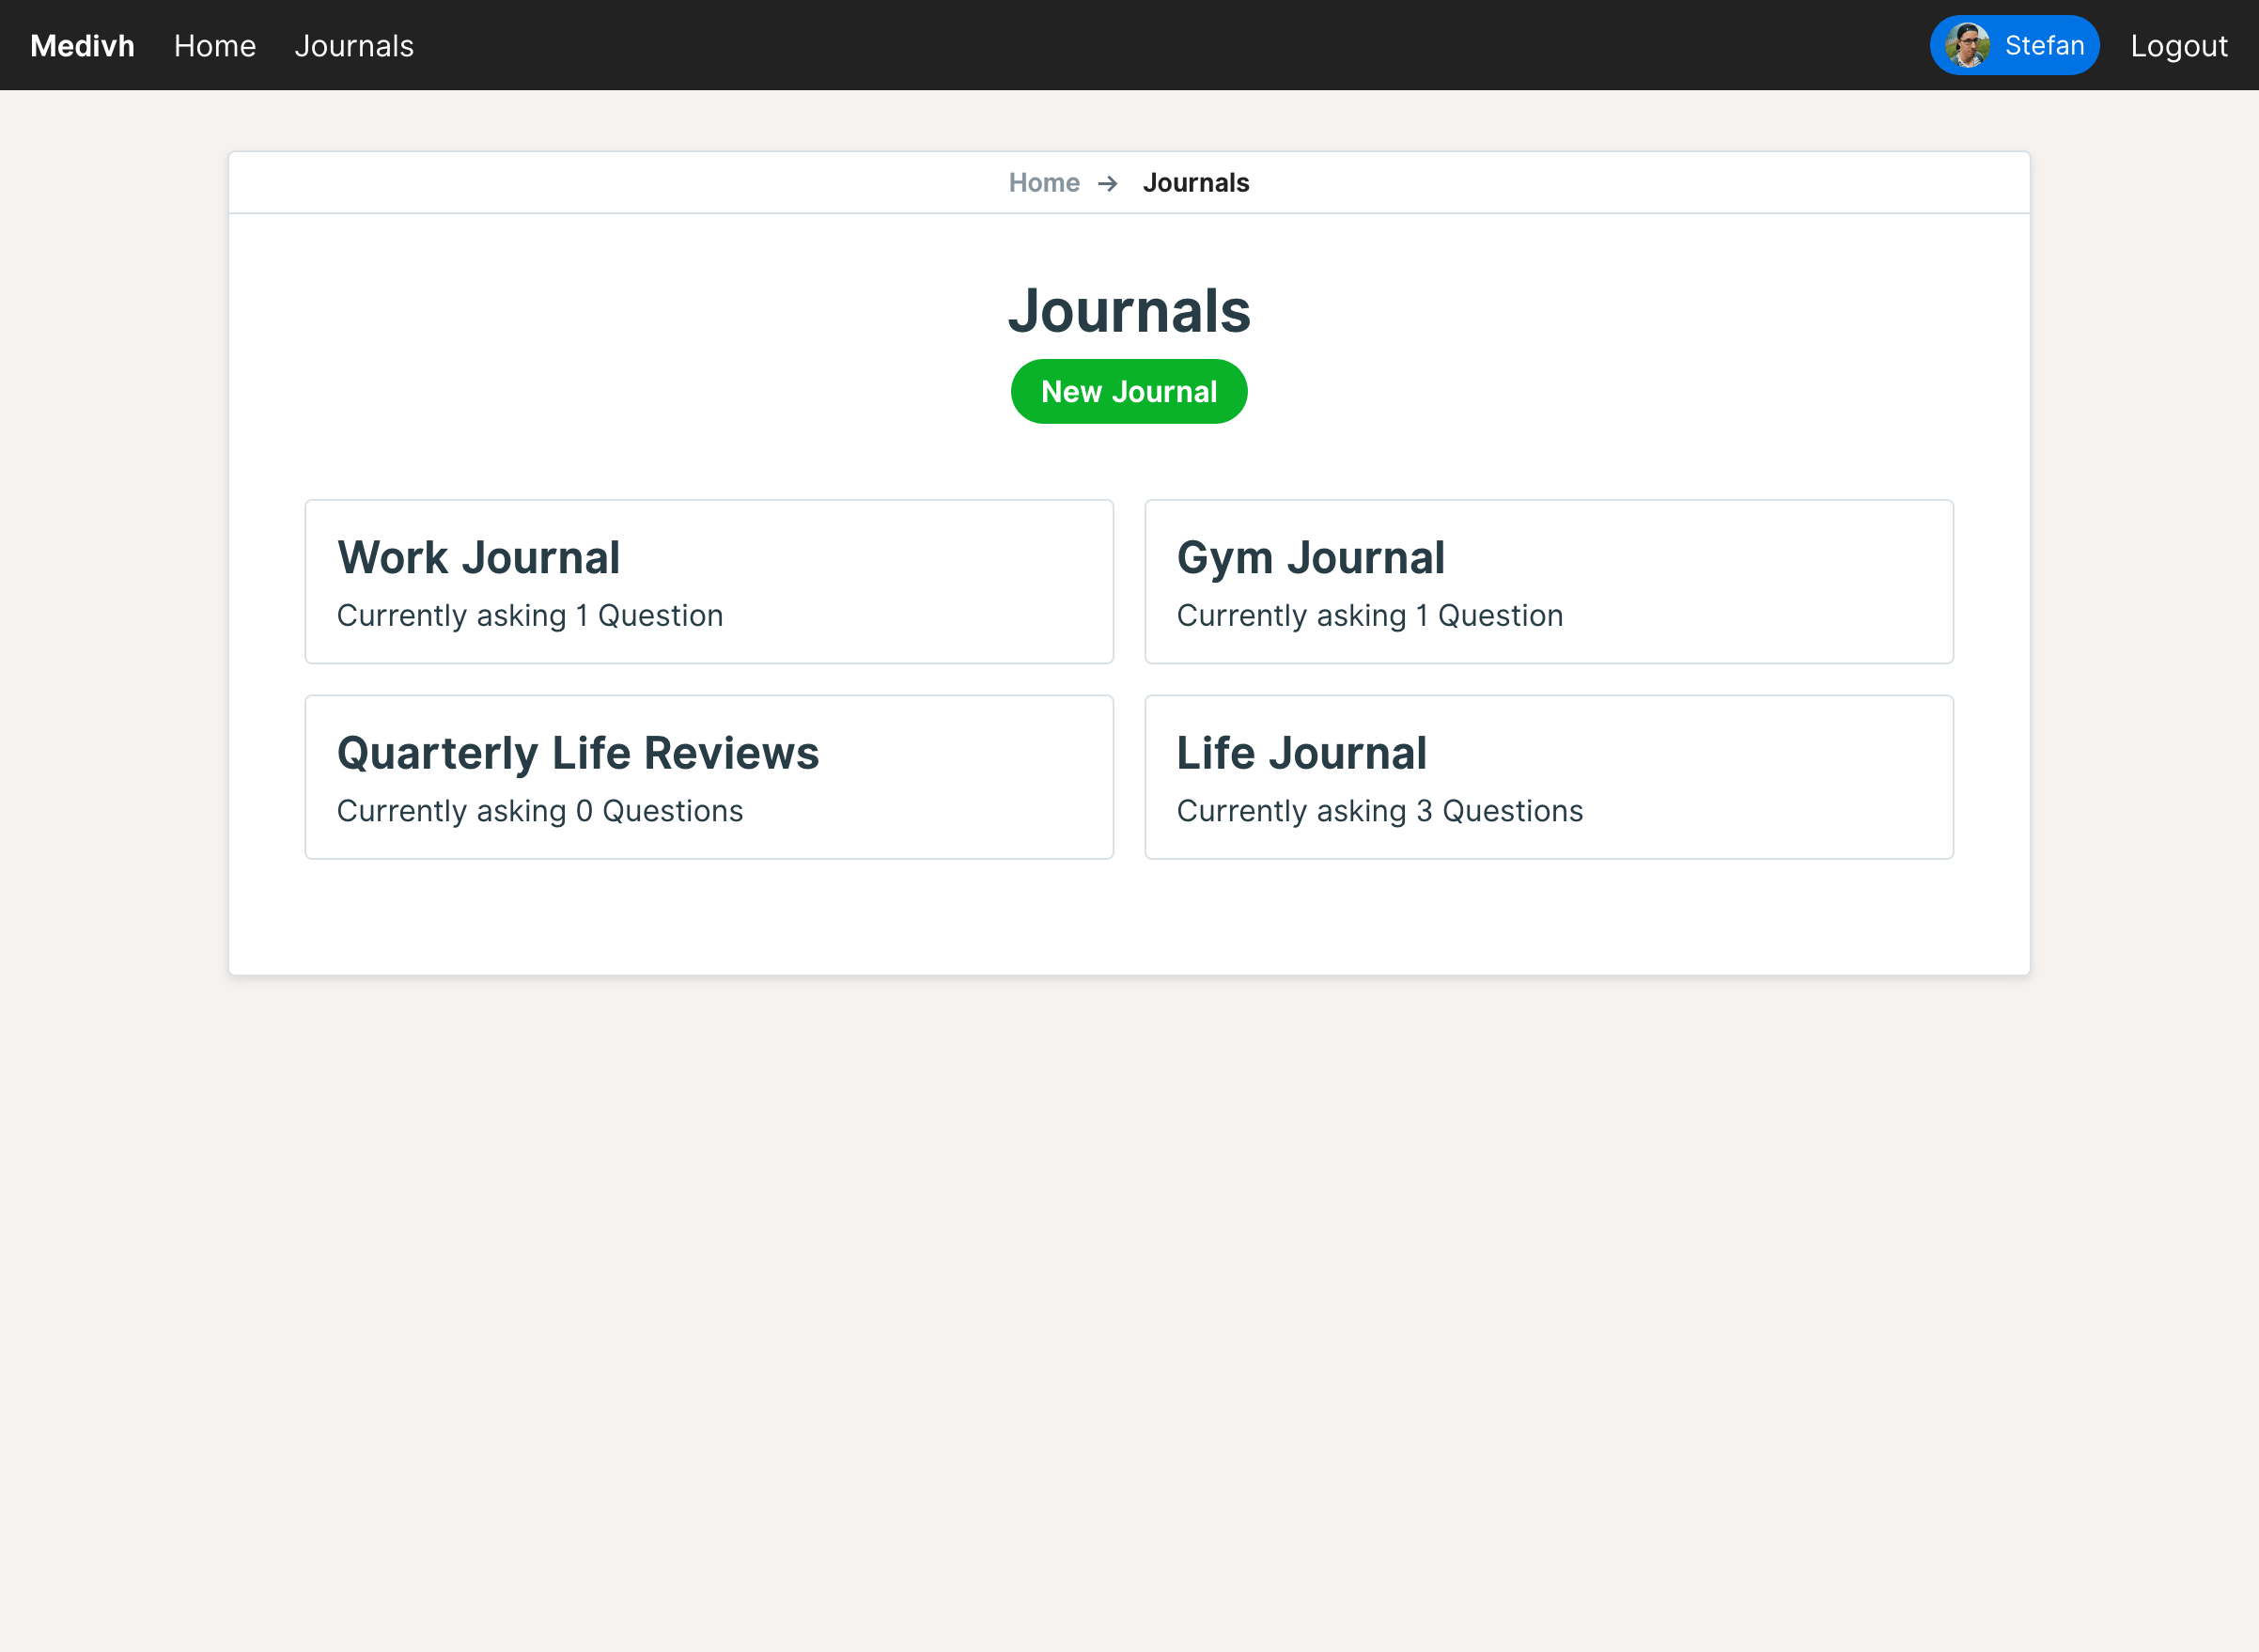 Overview of all available Journals of the current user